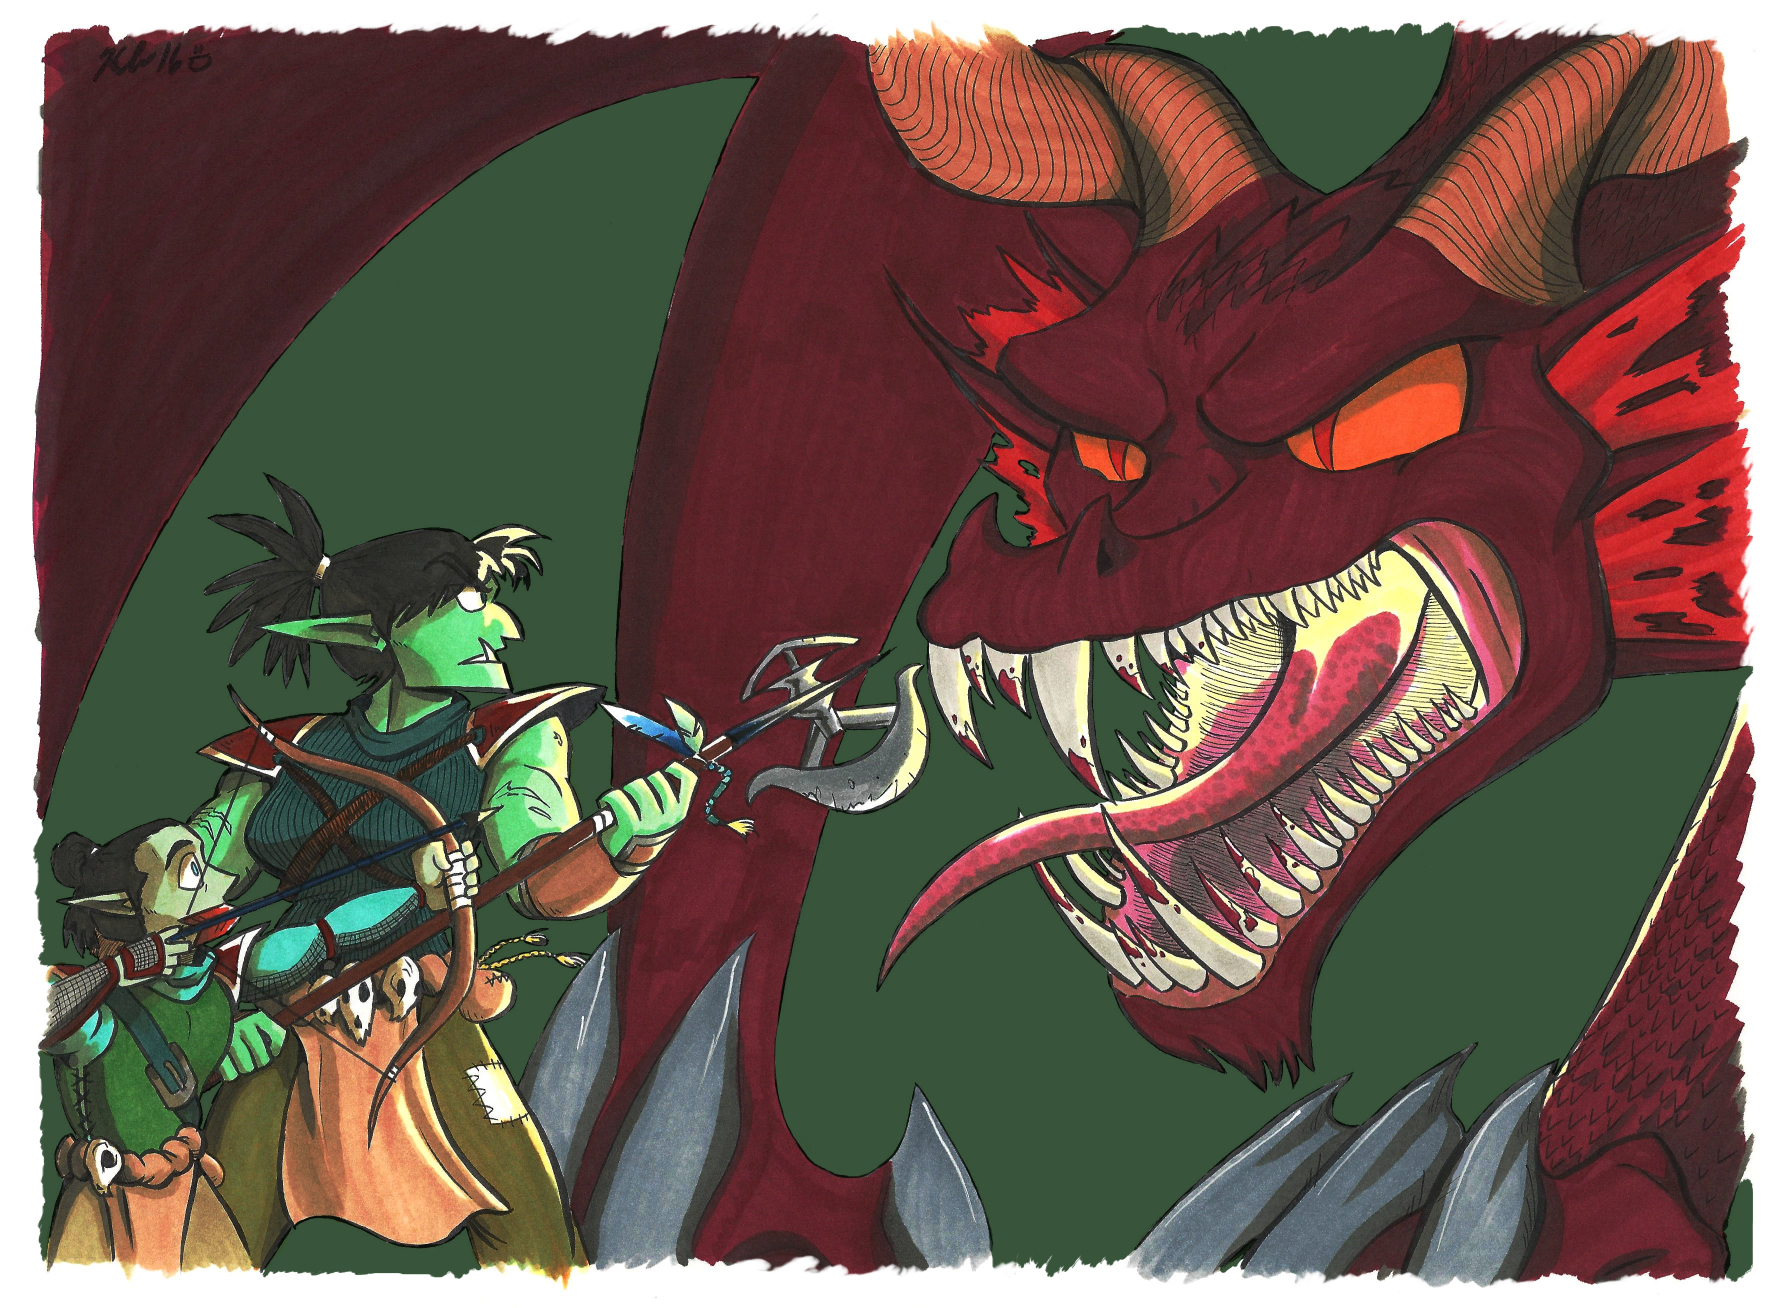 dungeons and dragons orc and half orc fight dragon